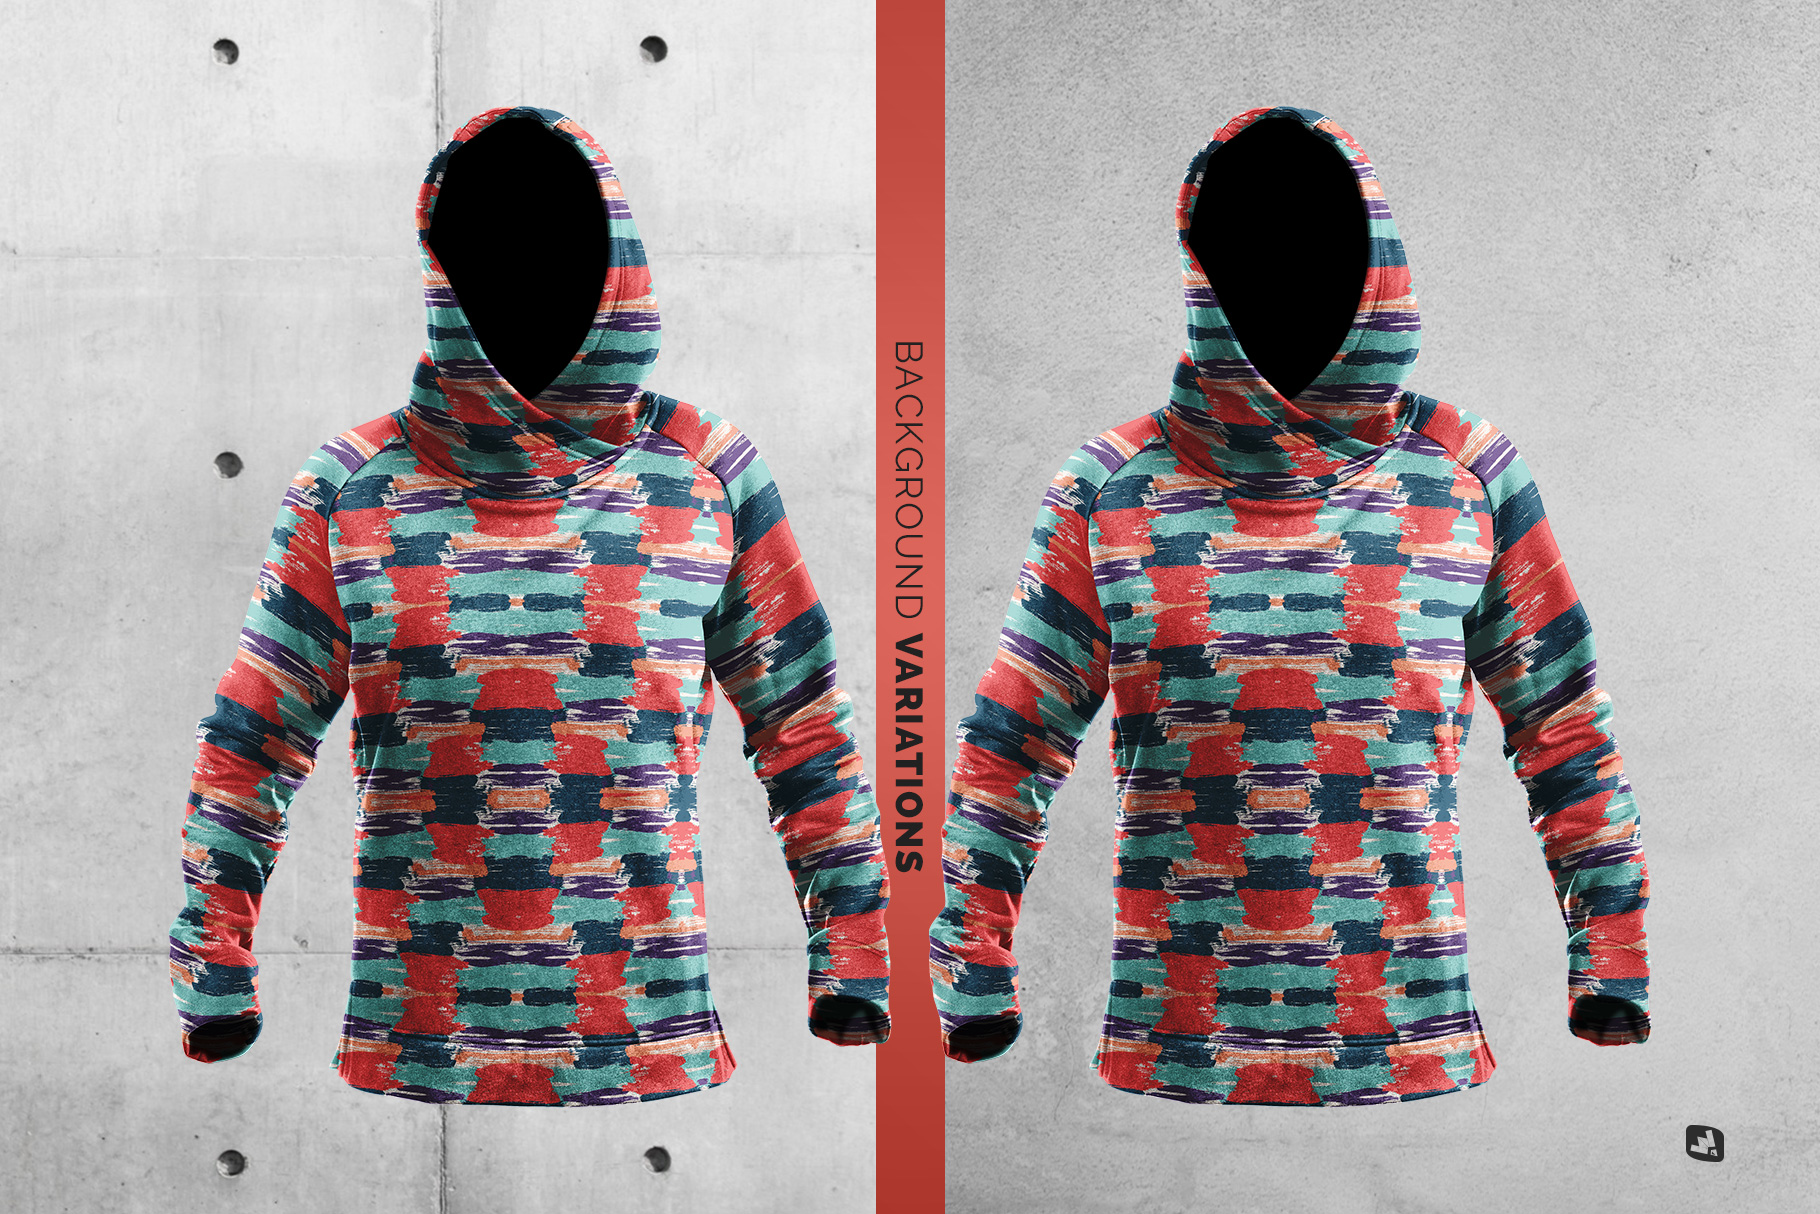 background options of the female wrapped hoodie set mockup